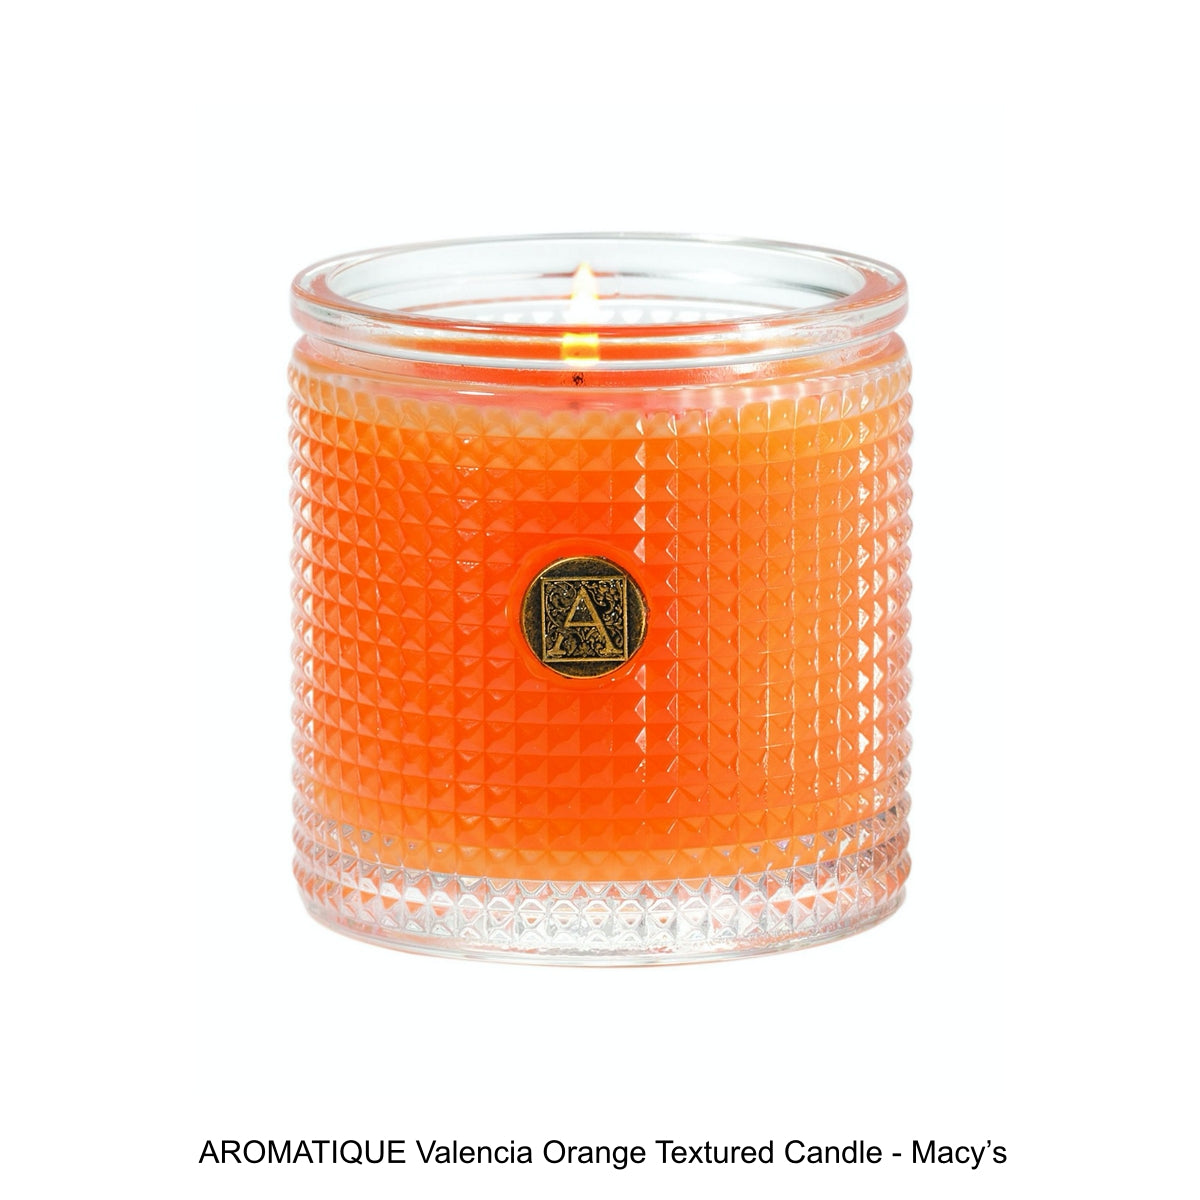 AROMATIQUE Valencia Orange Textured Candle - Macy's